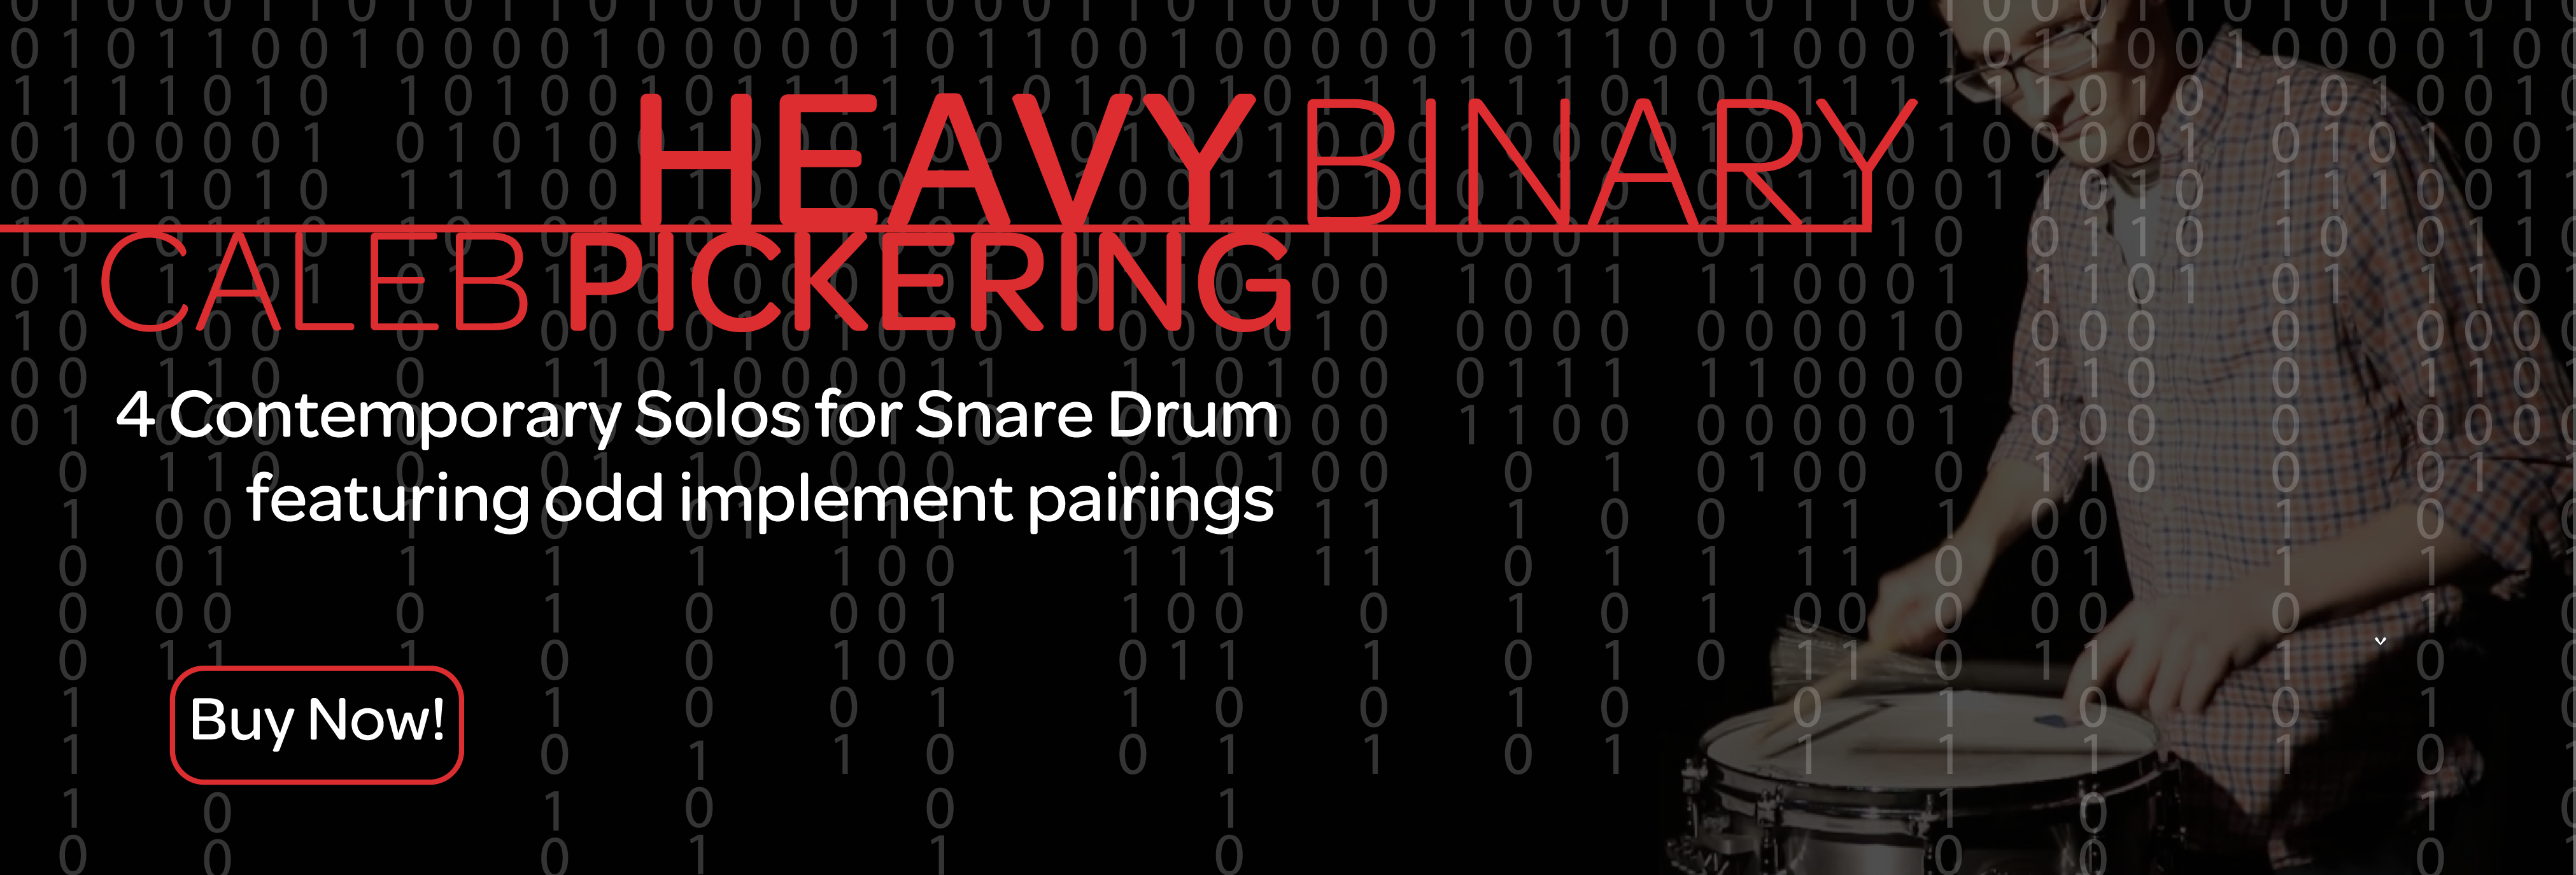 Heavy Binary - Caleb Pickering